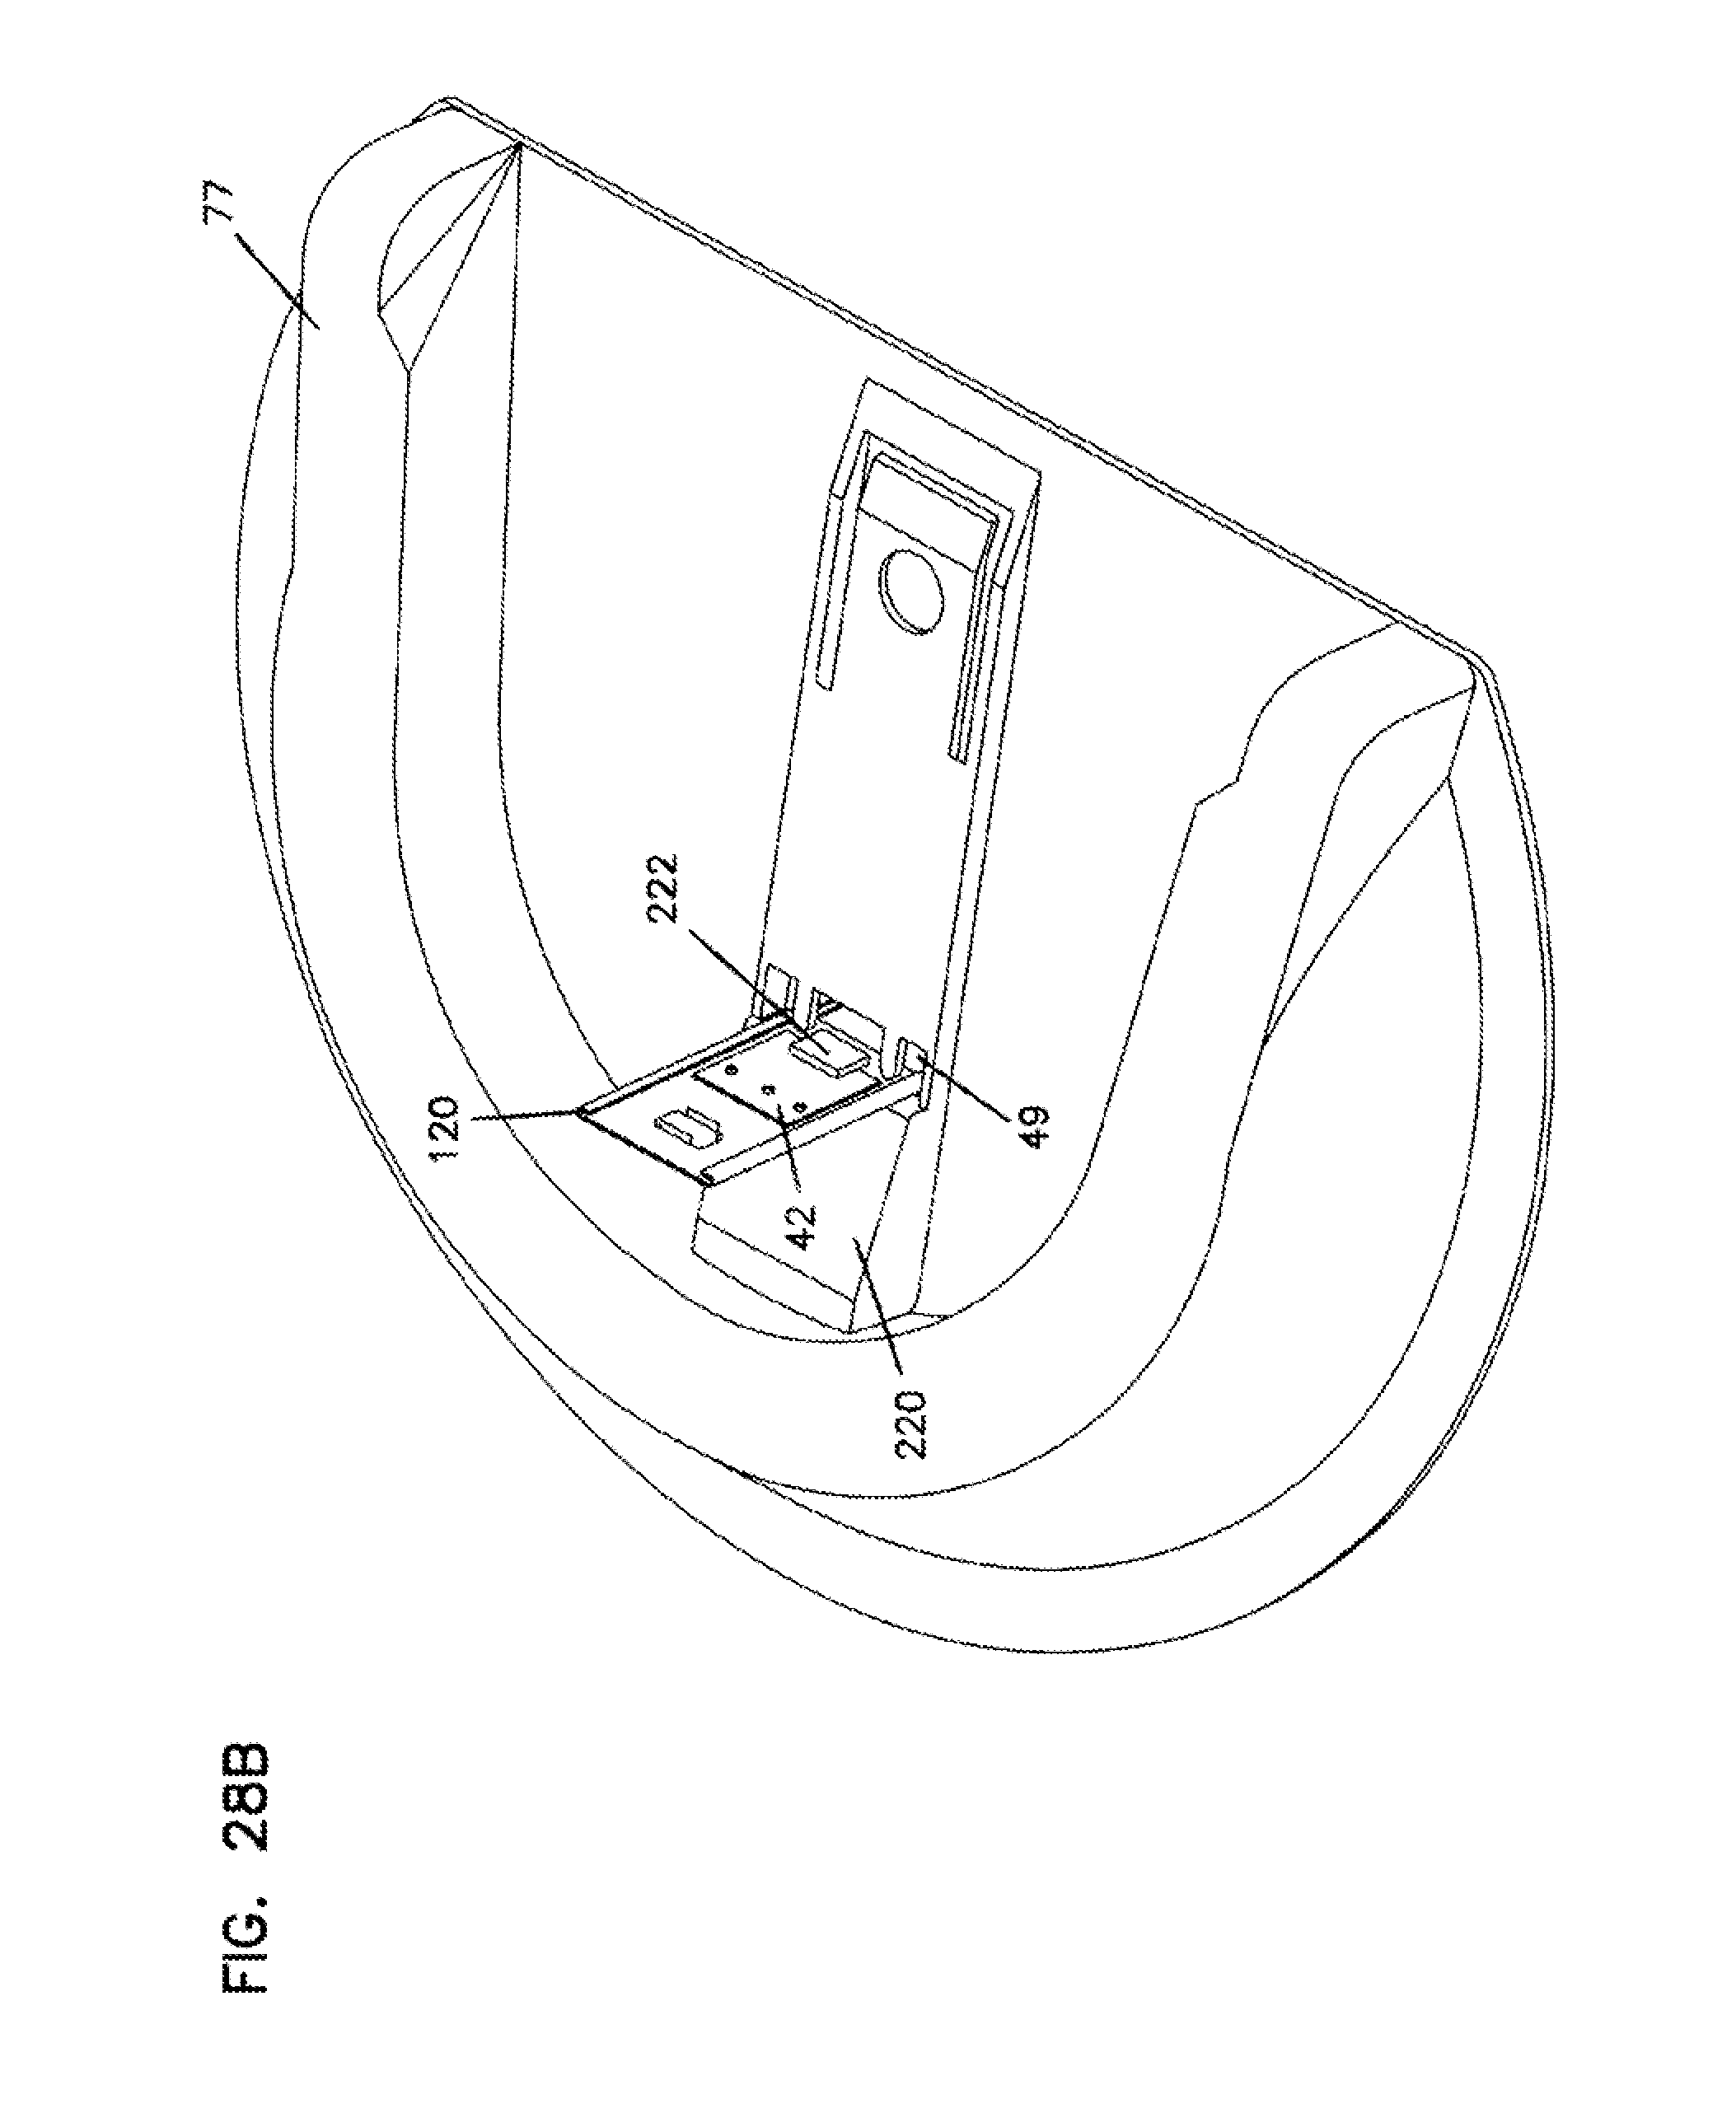 Us20070203408a1 analyte monitoring device and methods of use patents